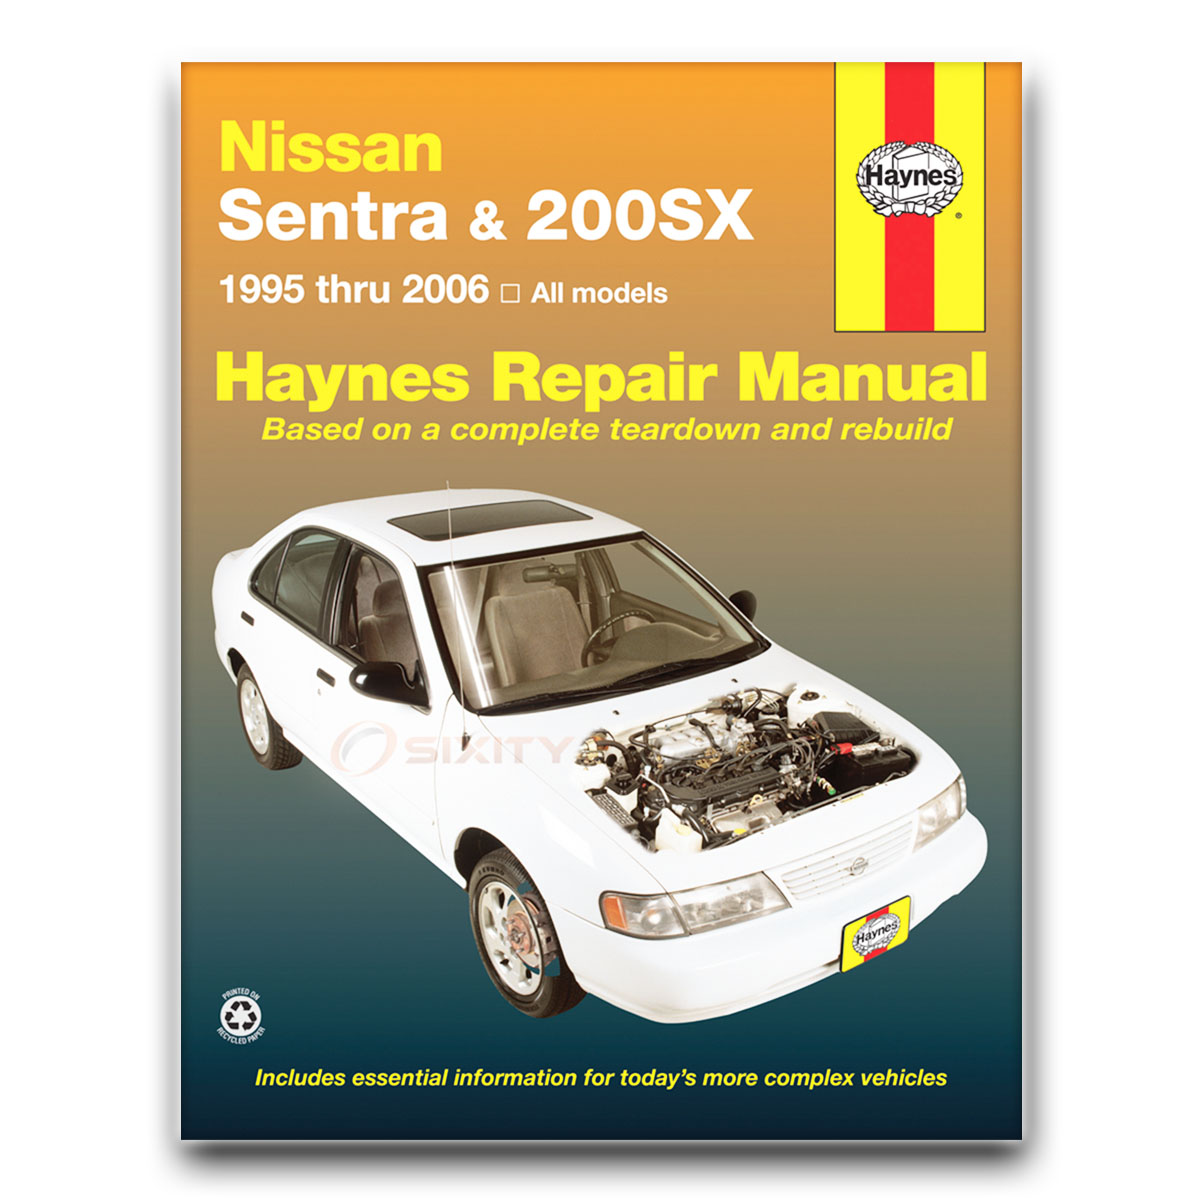 Haynes Repair Manual 72051 For Nissan Sentra 200sx 95 06 Shop Datsun 300zx Turbo Exhaust Diagram Category Service Garage Yb